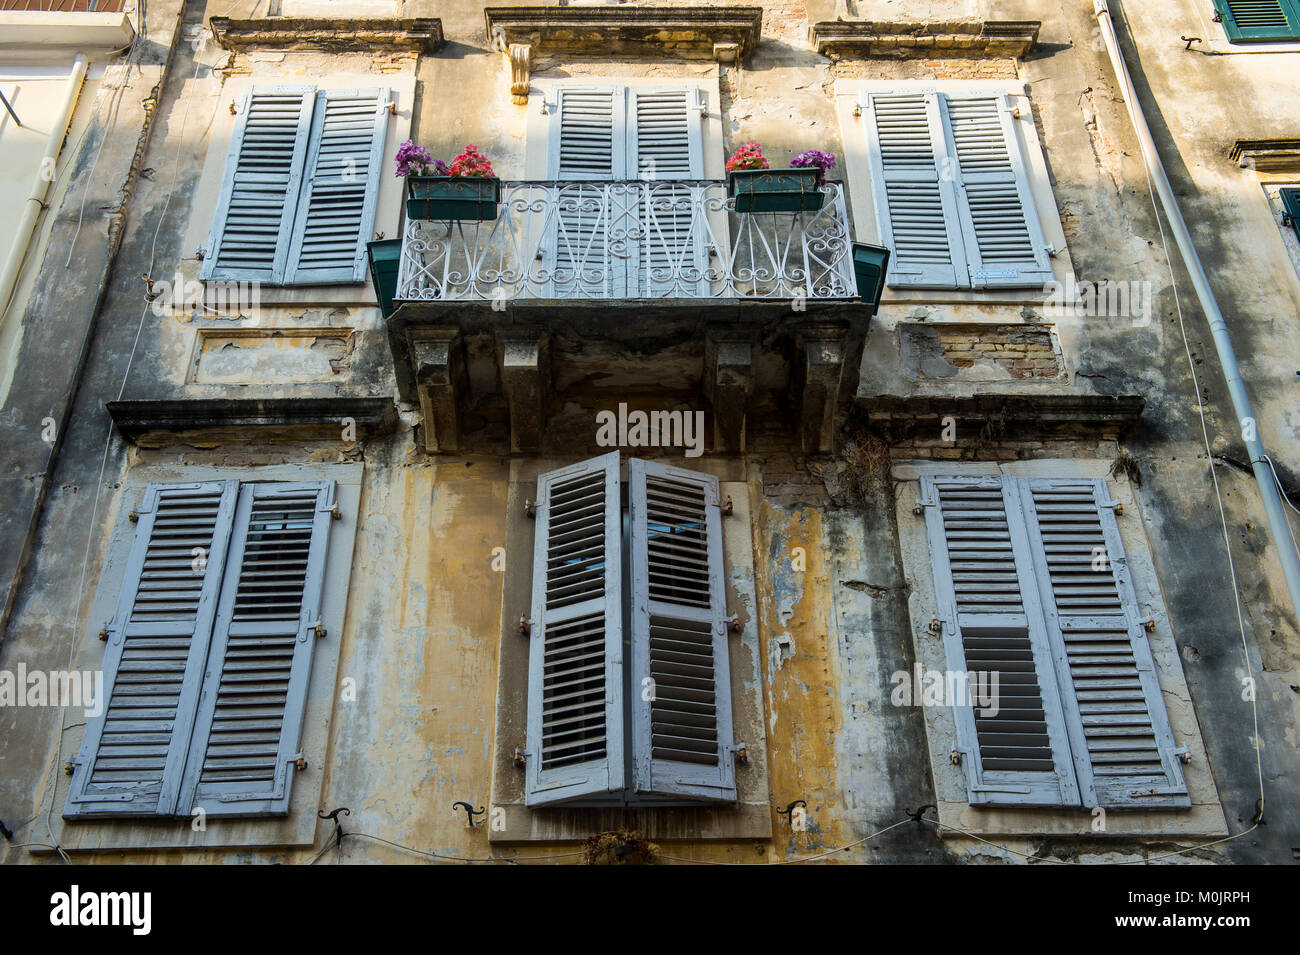 Housefront in the old town of Corfu, Ionian Islands, Greece - Stock Image